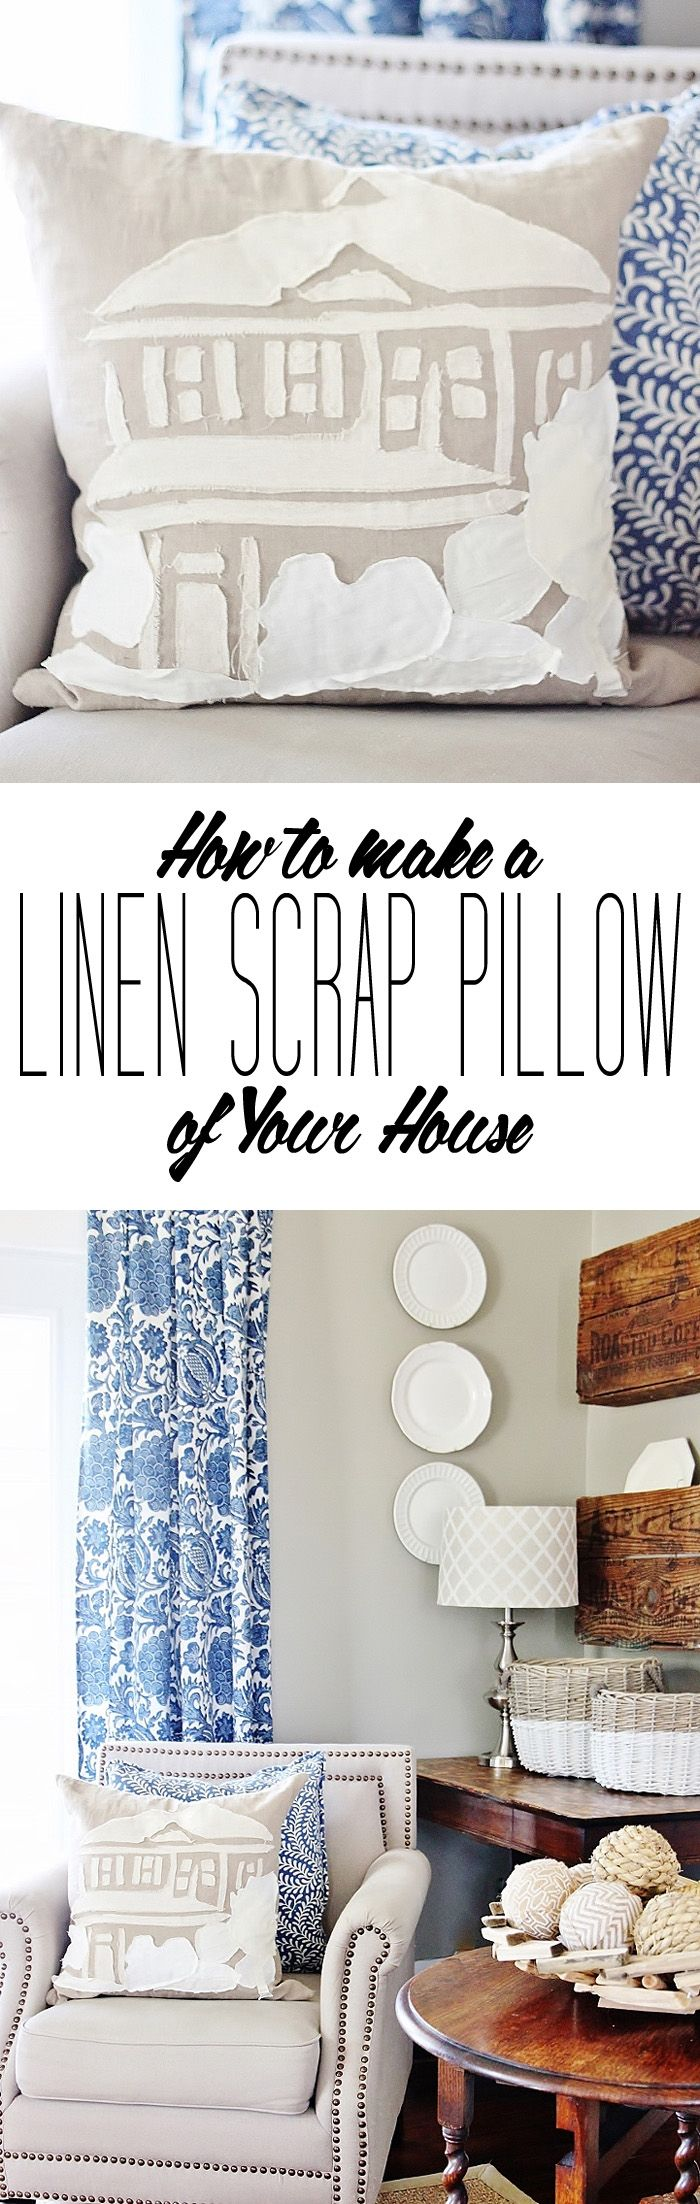 How To Make a Linen Scrap Pillow of Your House